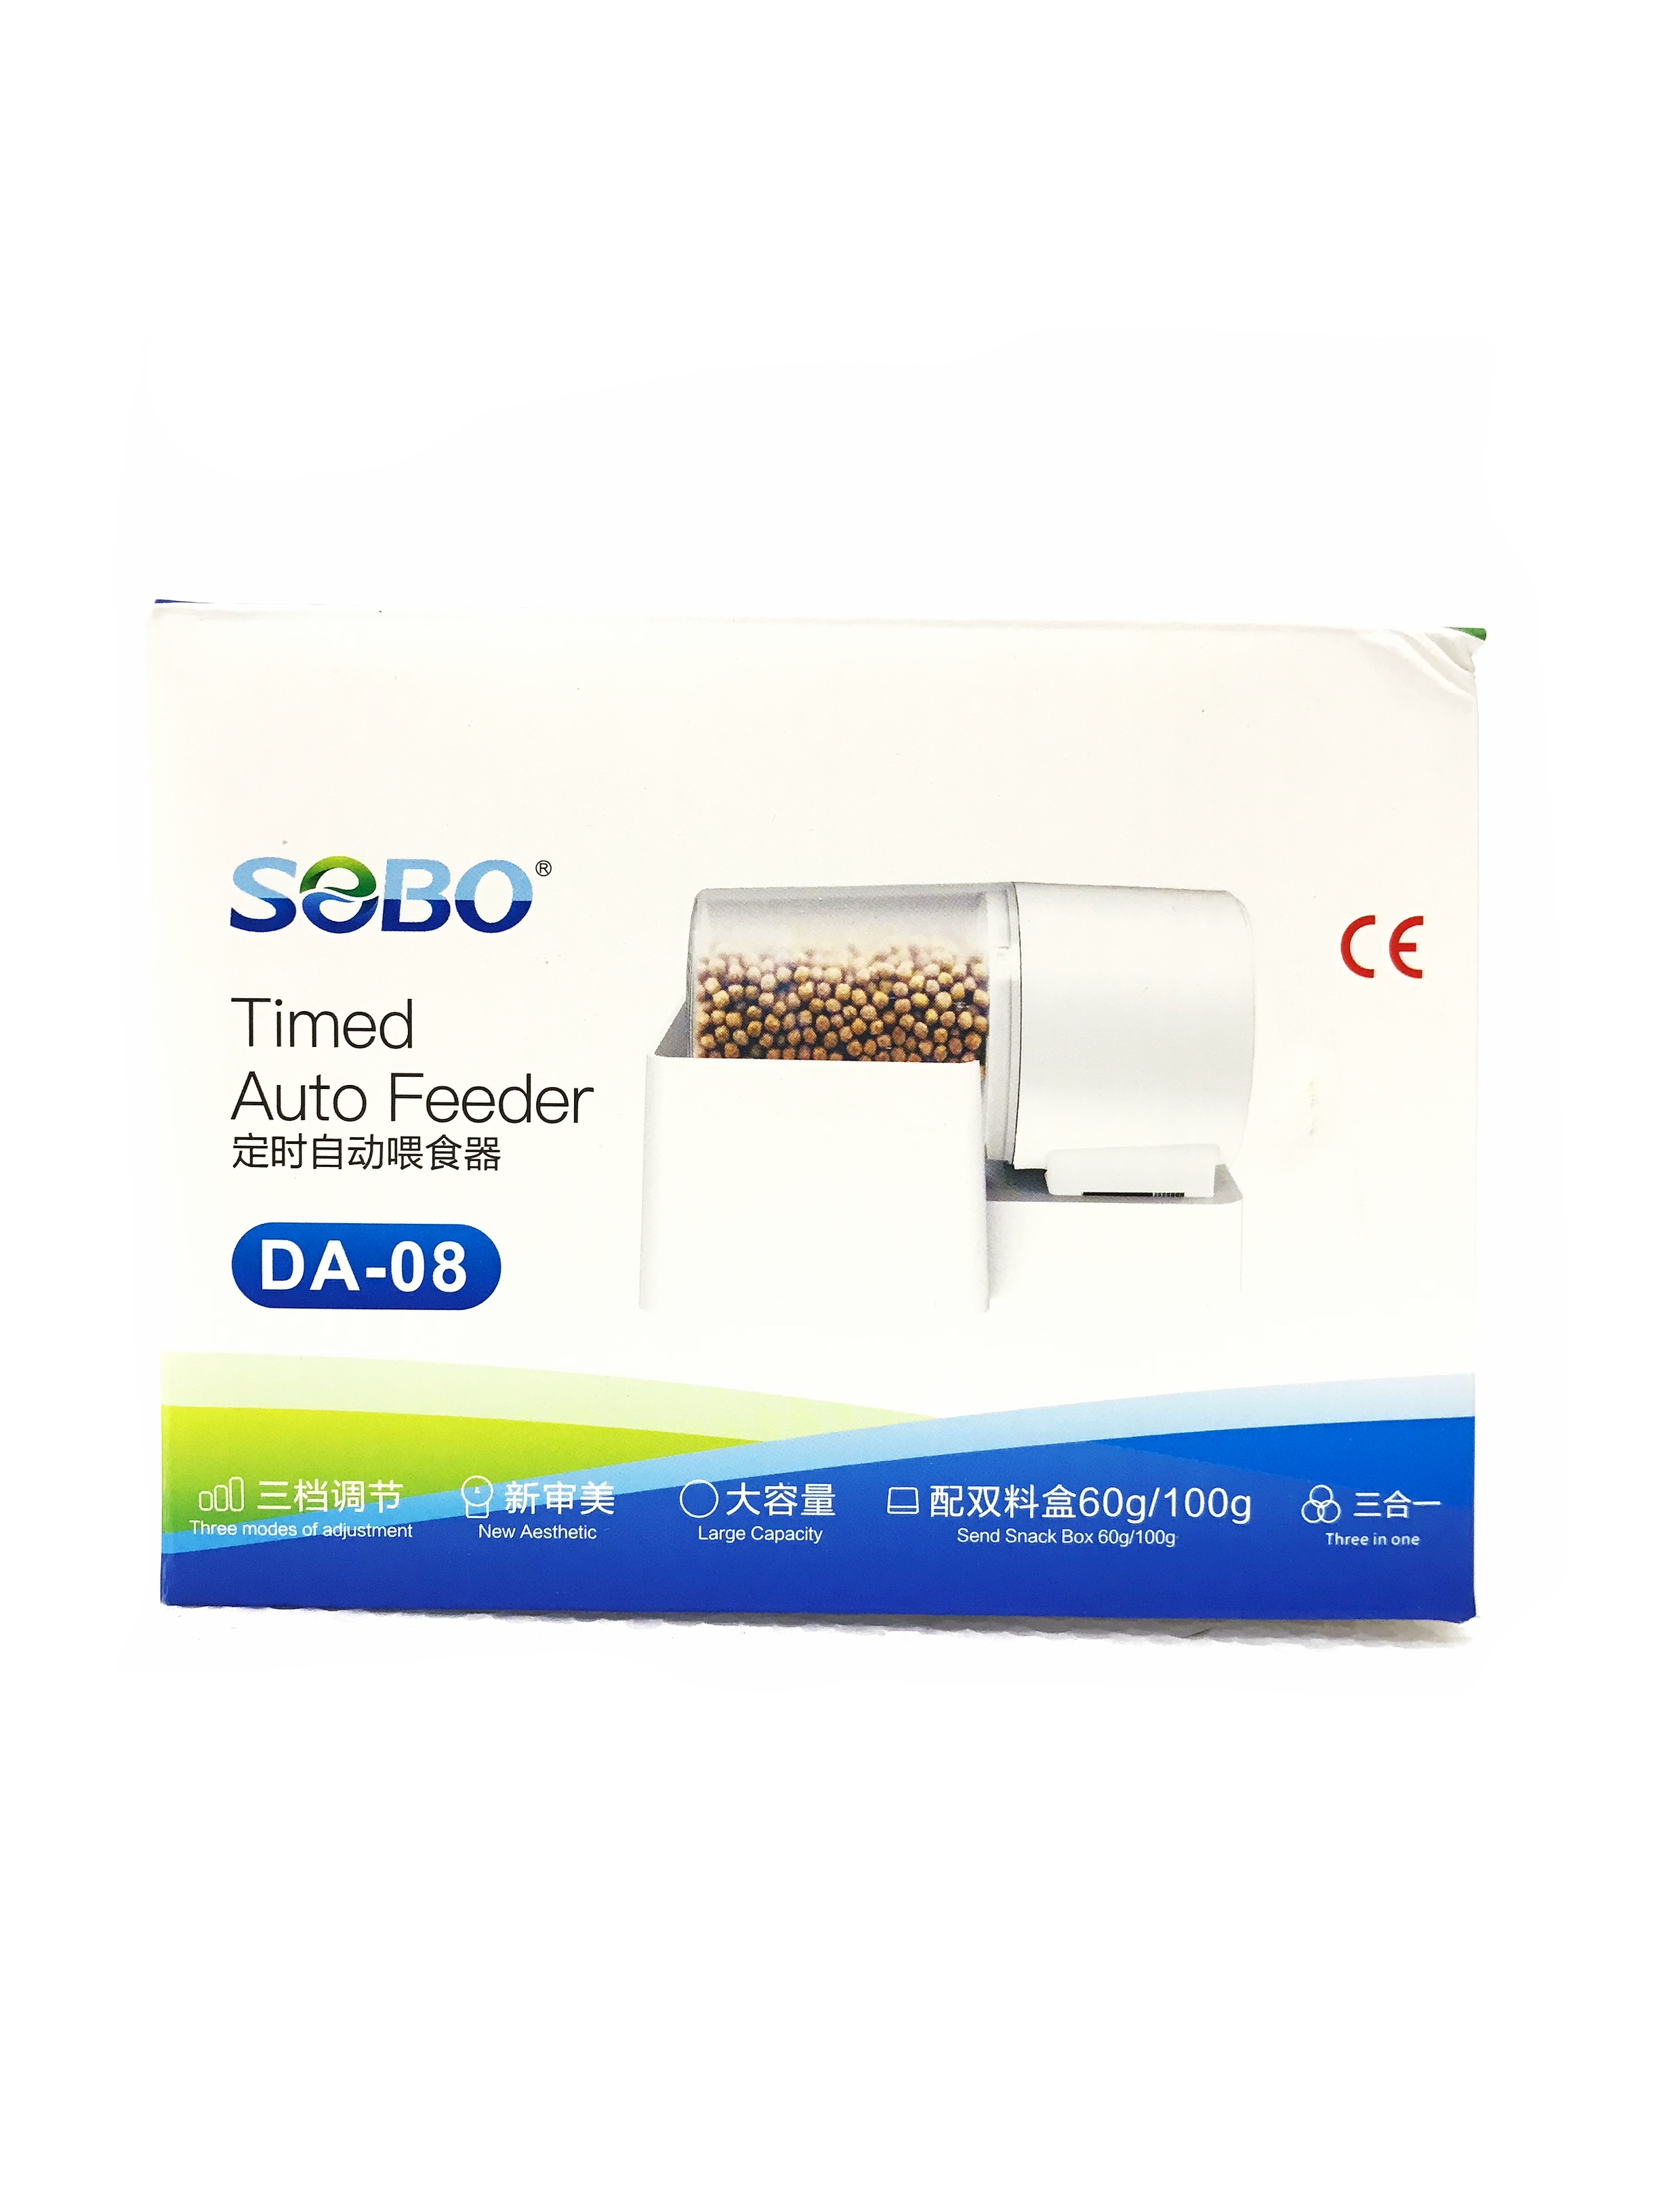 Sobo Timed Auto Feeder